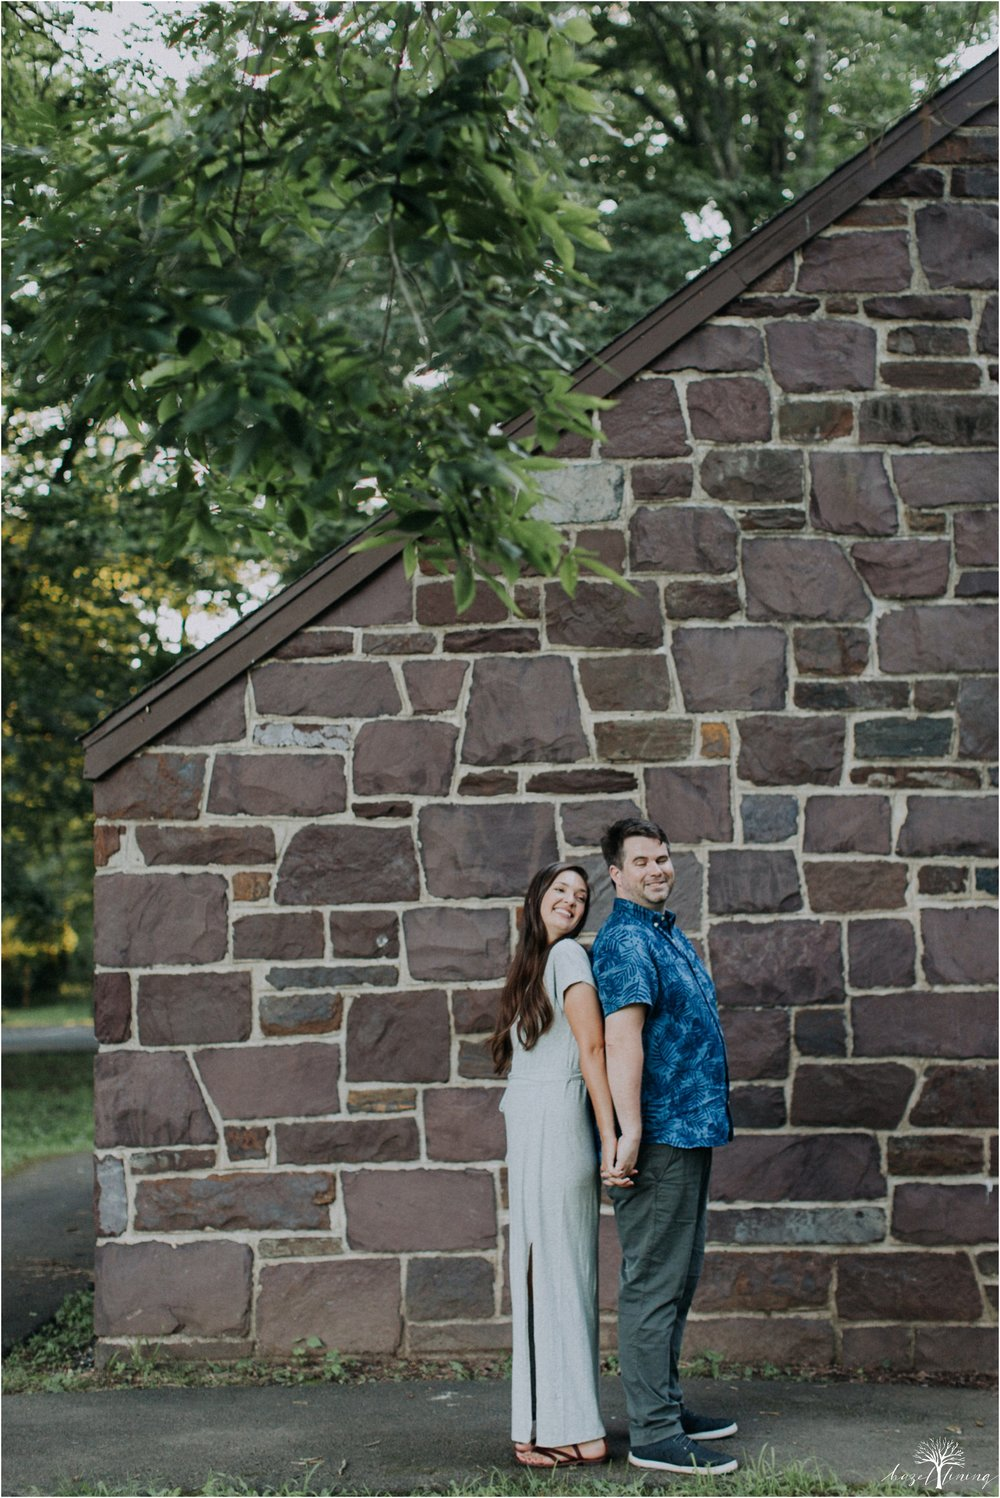 kelsey-delaney-kevin-jordan-tyler-state-park-newtown-pennsylvania-golden-hour-sunset-engagement-session-hazel-lining-travel-wedding-elopement-photography_0101.jpg